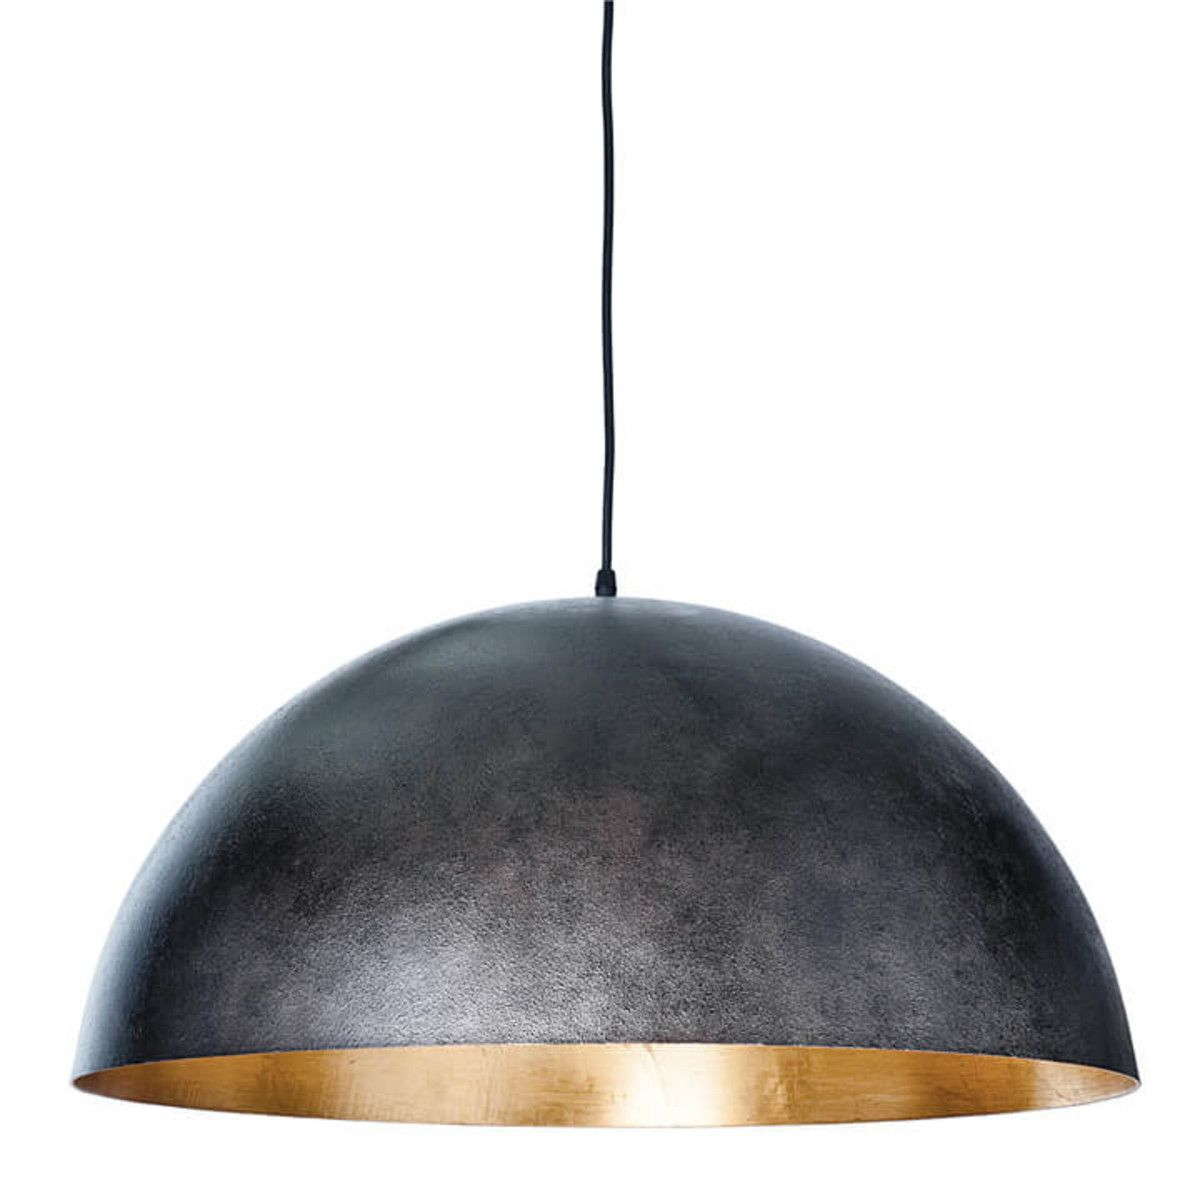 Gym Lighting Sigmund Pendant Large (Black & Gold For Newest Adriana Black 1 Light Single Dome Pendants (View 18 of 20)